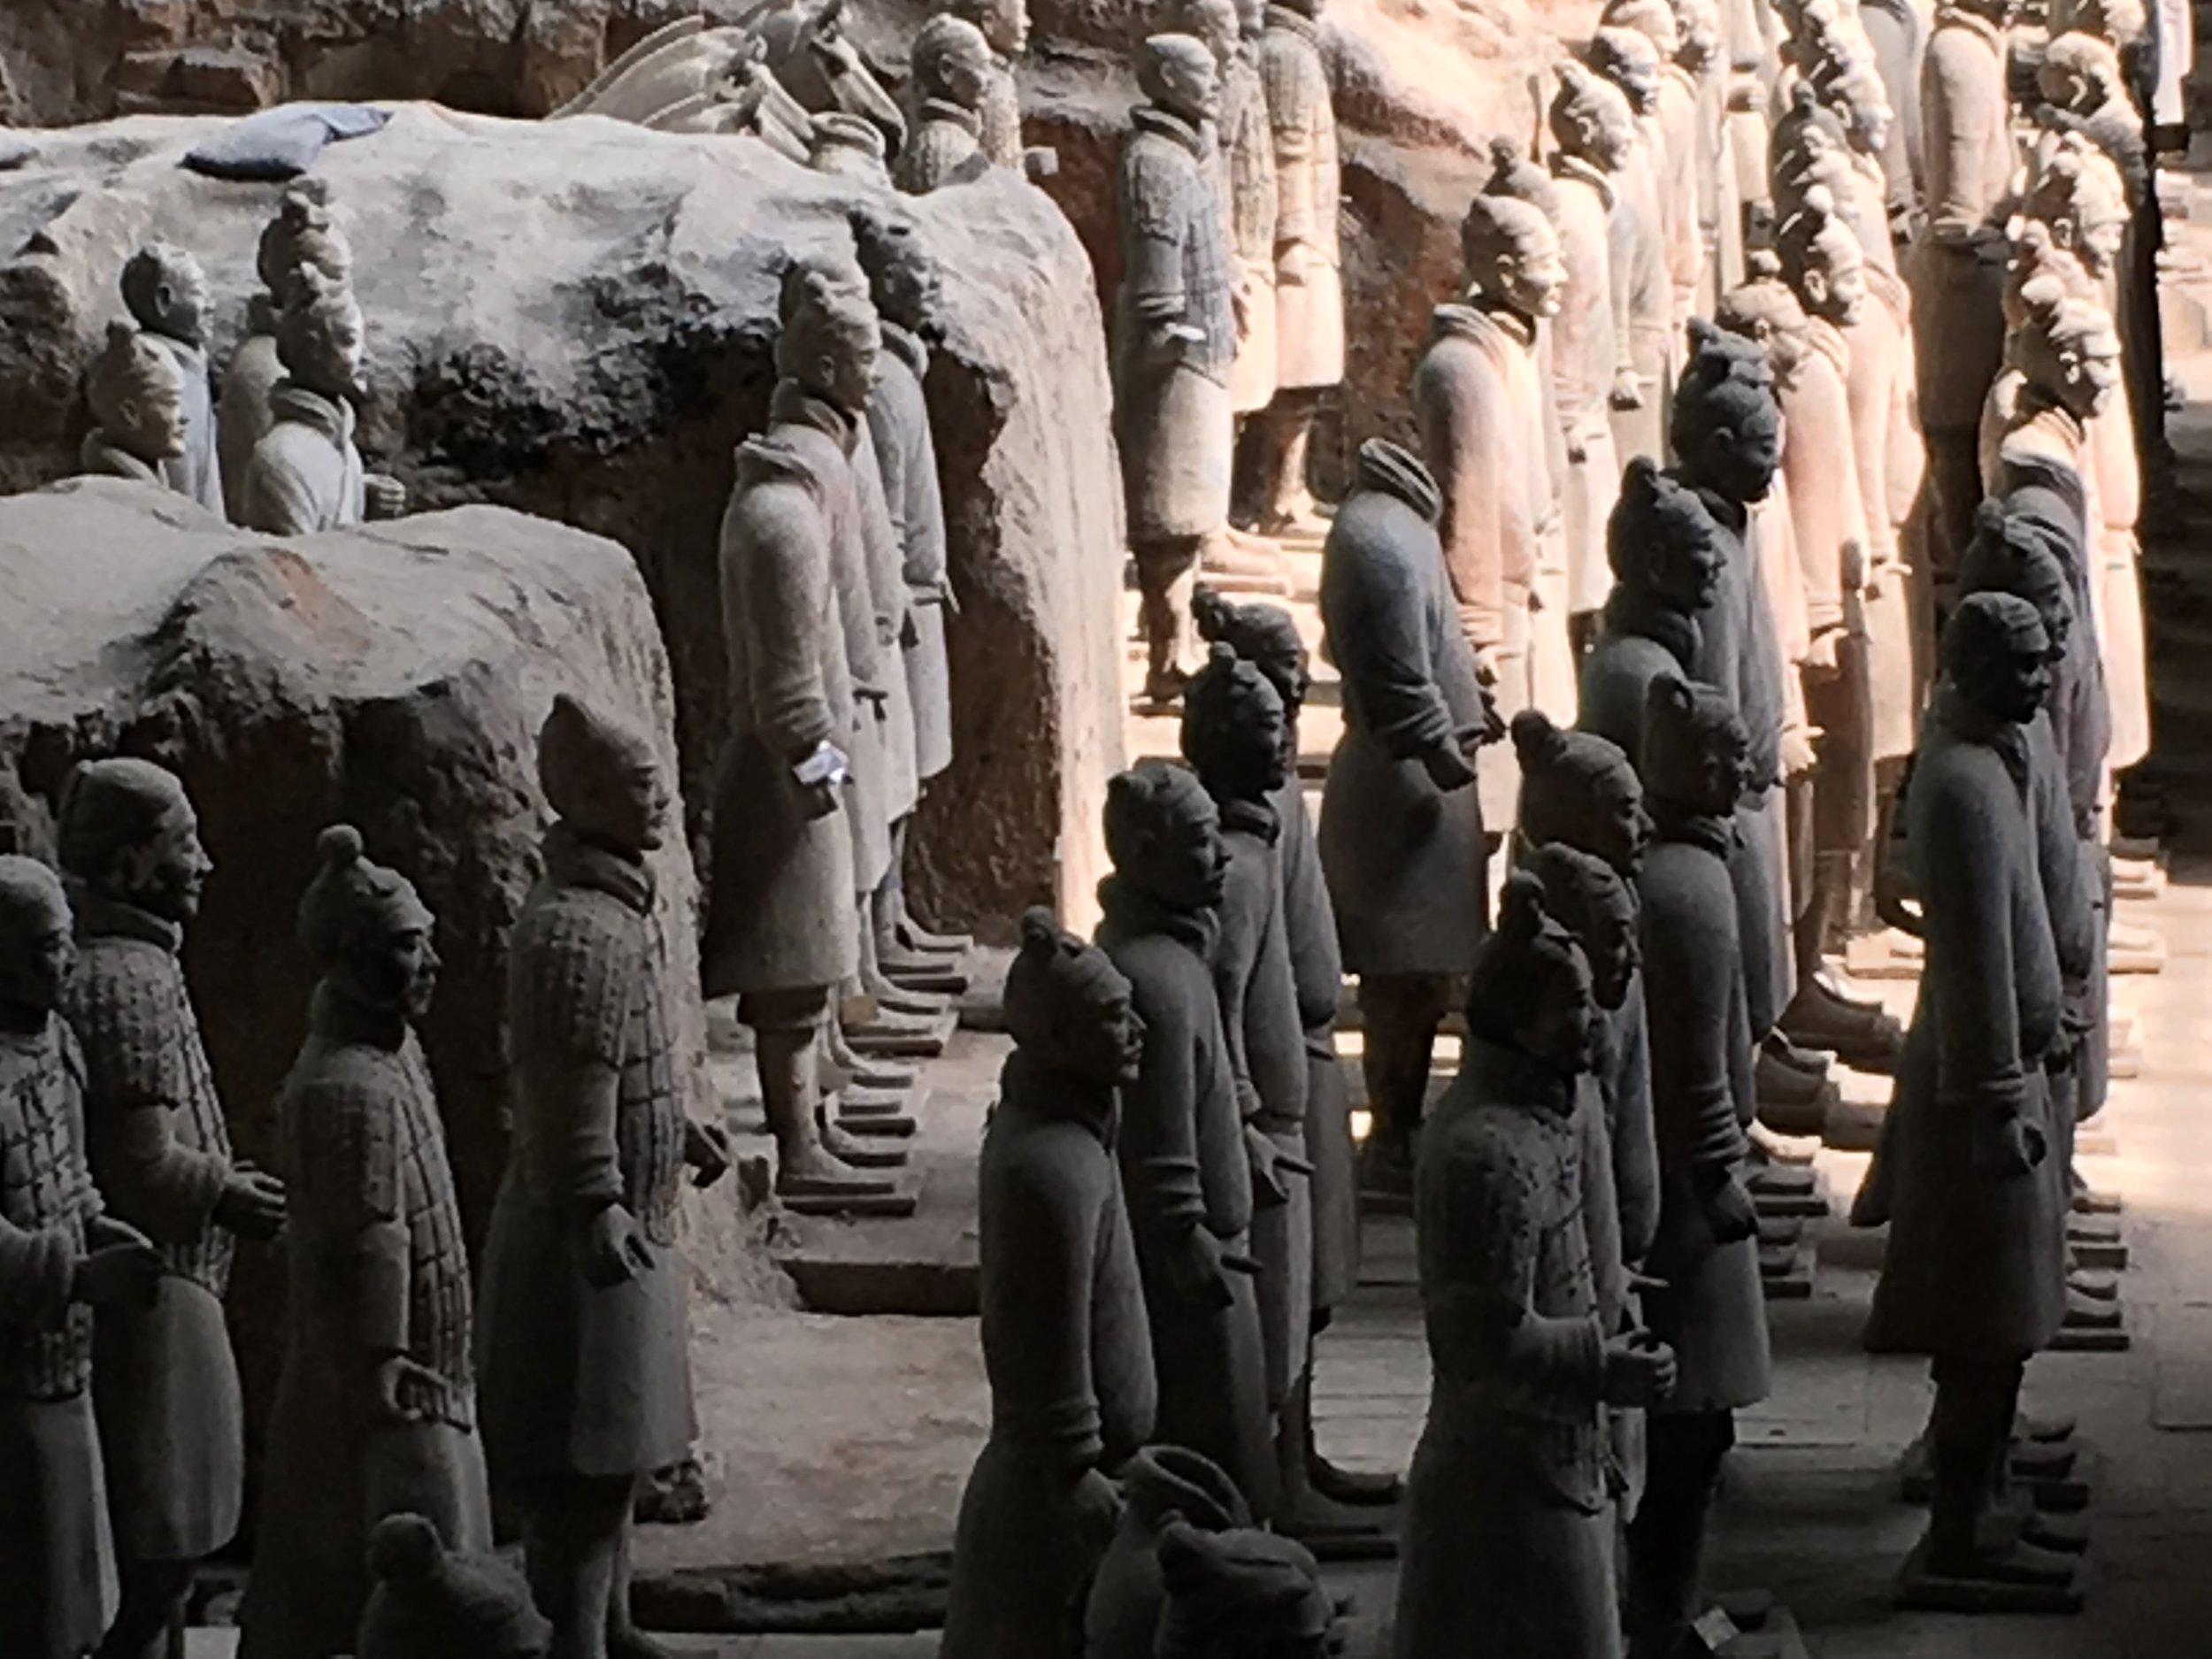 Xi'an - Early morning light shining on some of the nearly 8000 life-size terra cotta soldiers commissioned by Qin Shi Huang, China's First Emperor and founder of the Qin Dynasty,to protect him in the afterlife. The soldiers were discovered in 1974 (I was six years old).